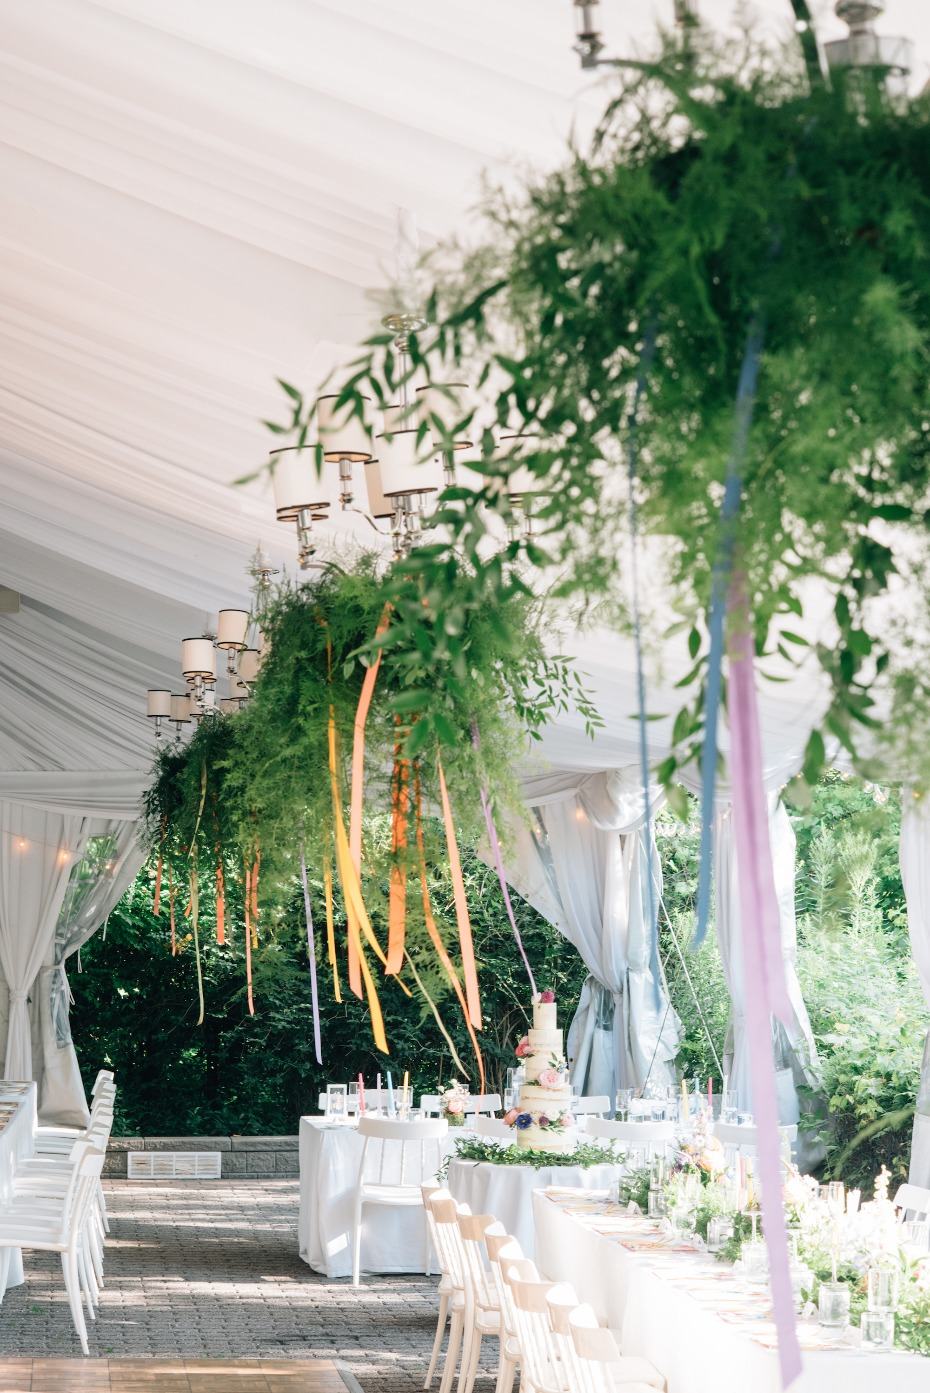 Hanging greenery and ribbon decor